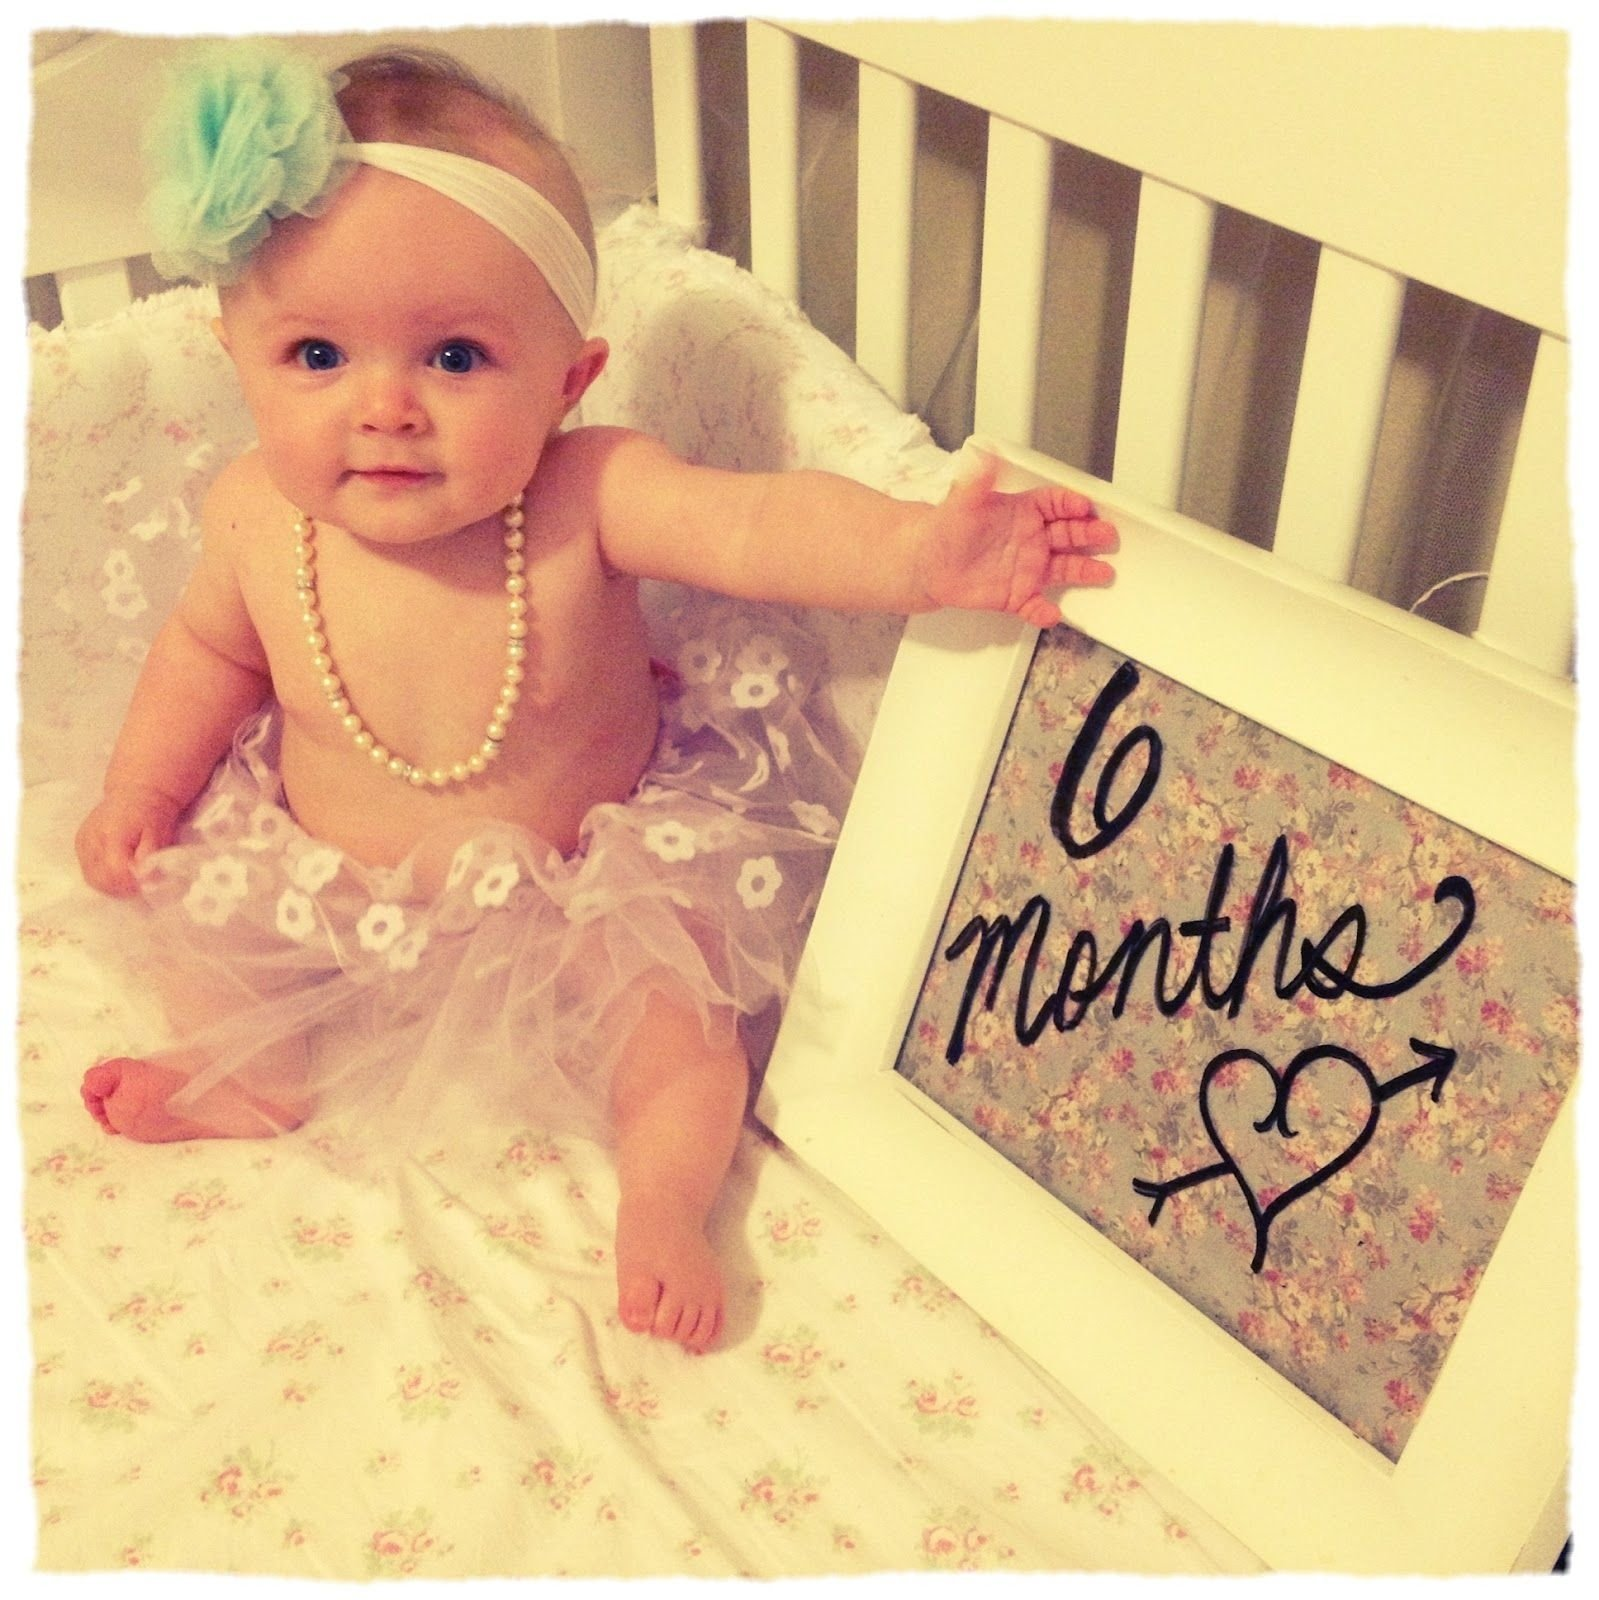 6 month baby girl photo shoot ideas - google search | baby